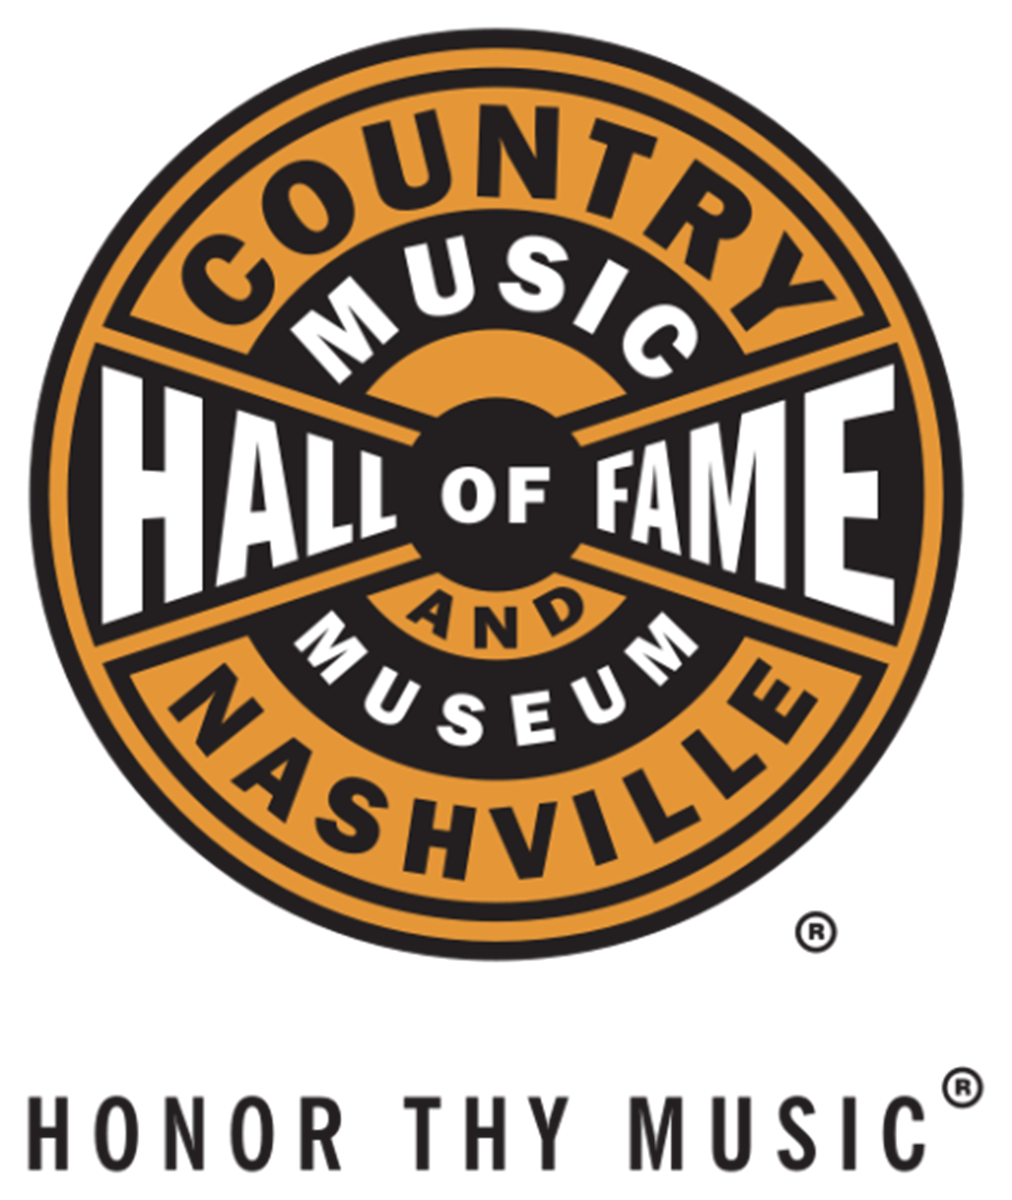 Tennessee Country Music Hall of Fame